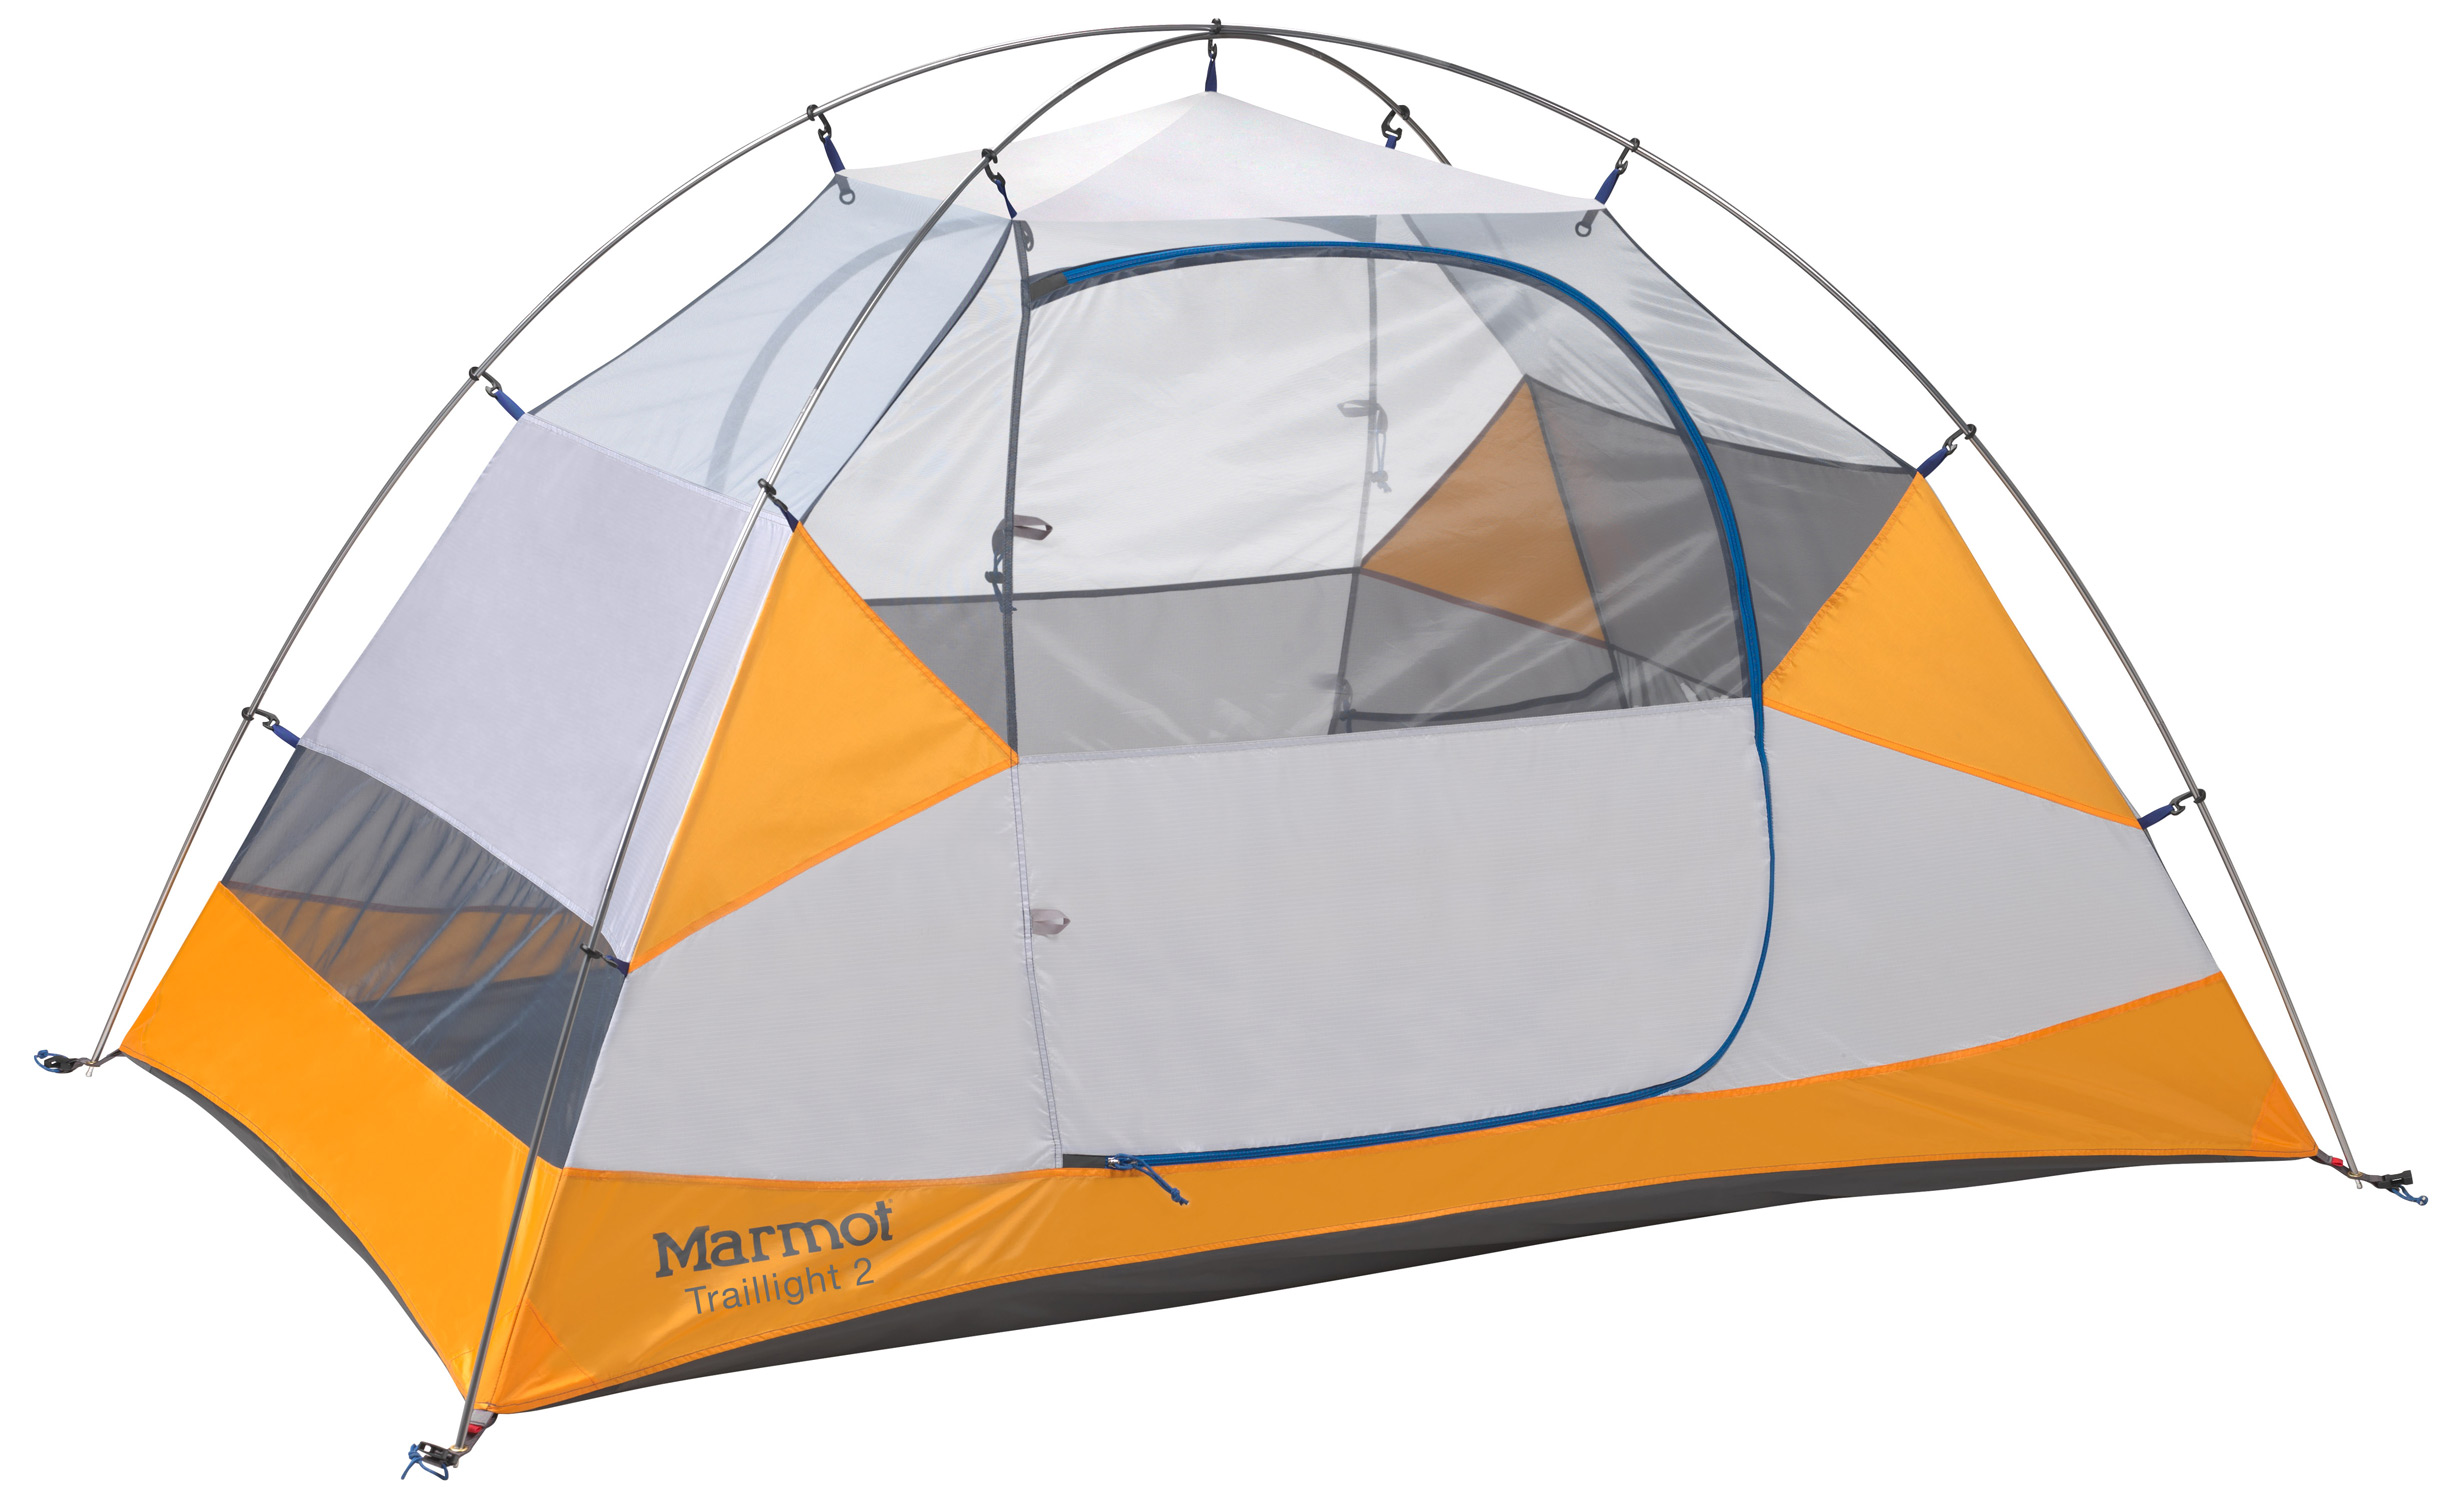 Camp and Hike Key Features of the Marmot Traillight 2 Person Tent: DAC Press-Fit Poles Two D Shaped Doors Full Coverage Fly Center Zip Front Vestibule Catenary Cut Floor Snag-Free Zipper Flap Jingle-Free Nylon Zipper Pulls Light-Reflective Points Fly fabric 68d 100% Polyester Ripstop 1800mm, W/R, F/R Canopy fabric 68d 100% Polyester Ripstop,F/R / 40d 100% Polyester No-See-Um Mesh F/R Floor fabric 70d 100% Nylon PU 3000mm W/R, F/R Min. Weight 4lbs 10oz (2097g) Max. Weight 5lbs 0oz (2267g) Dimensions 43 x 54 x 90in / 109 x 137 x 228.6cm Floor area 33.75 sq ft, 3.1 sq m Vestibule area 9.6 sq ft, 0.9 sq m Packed size 26 x 7in / 66 x 17.8cm No./Pole type 2 / DAC Press-Fit - $142.95